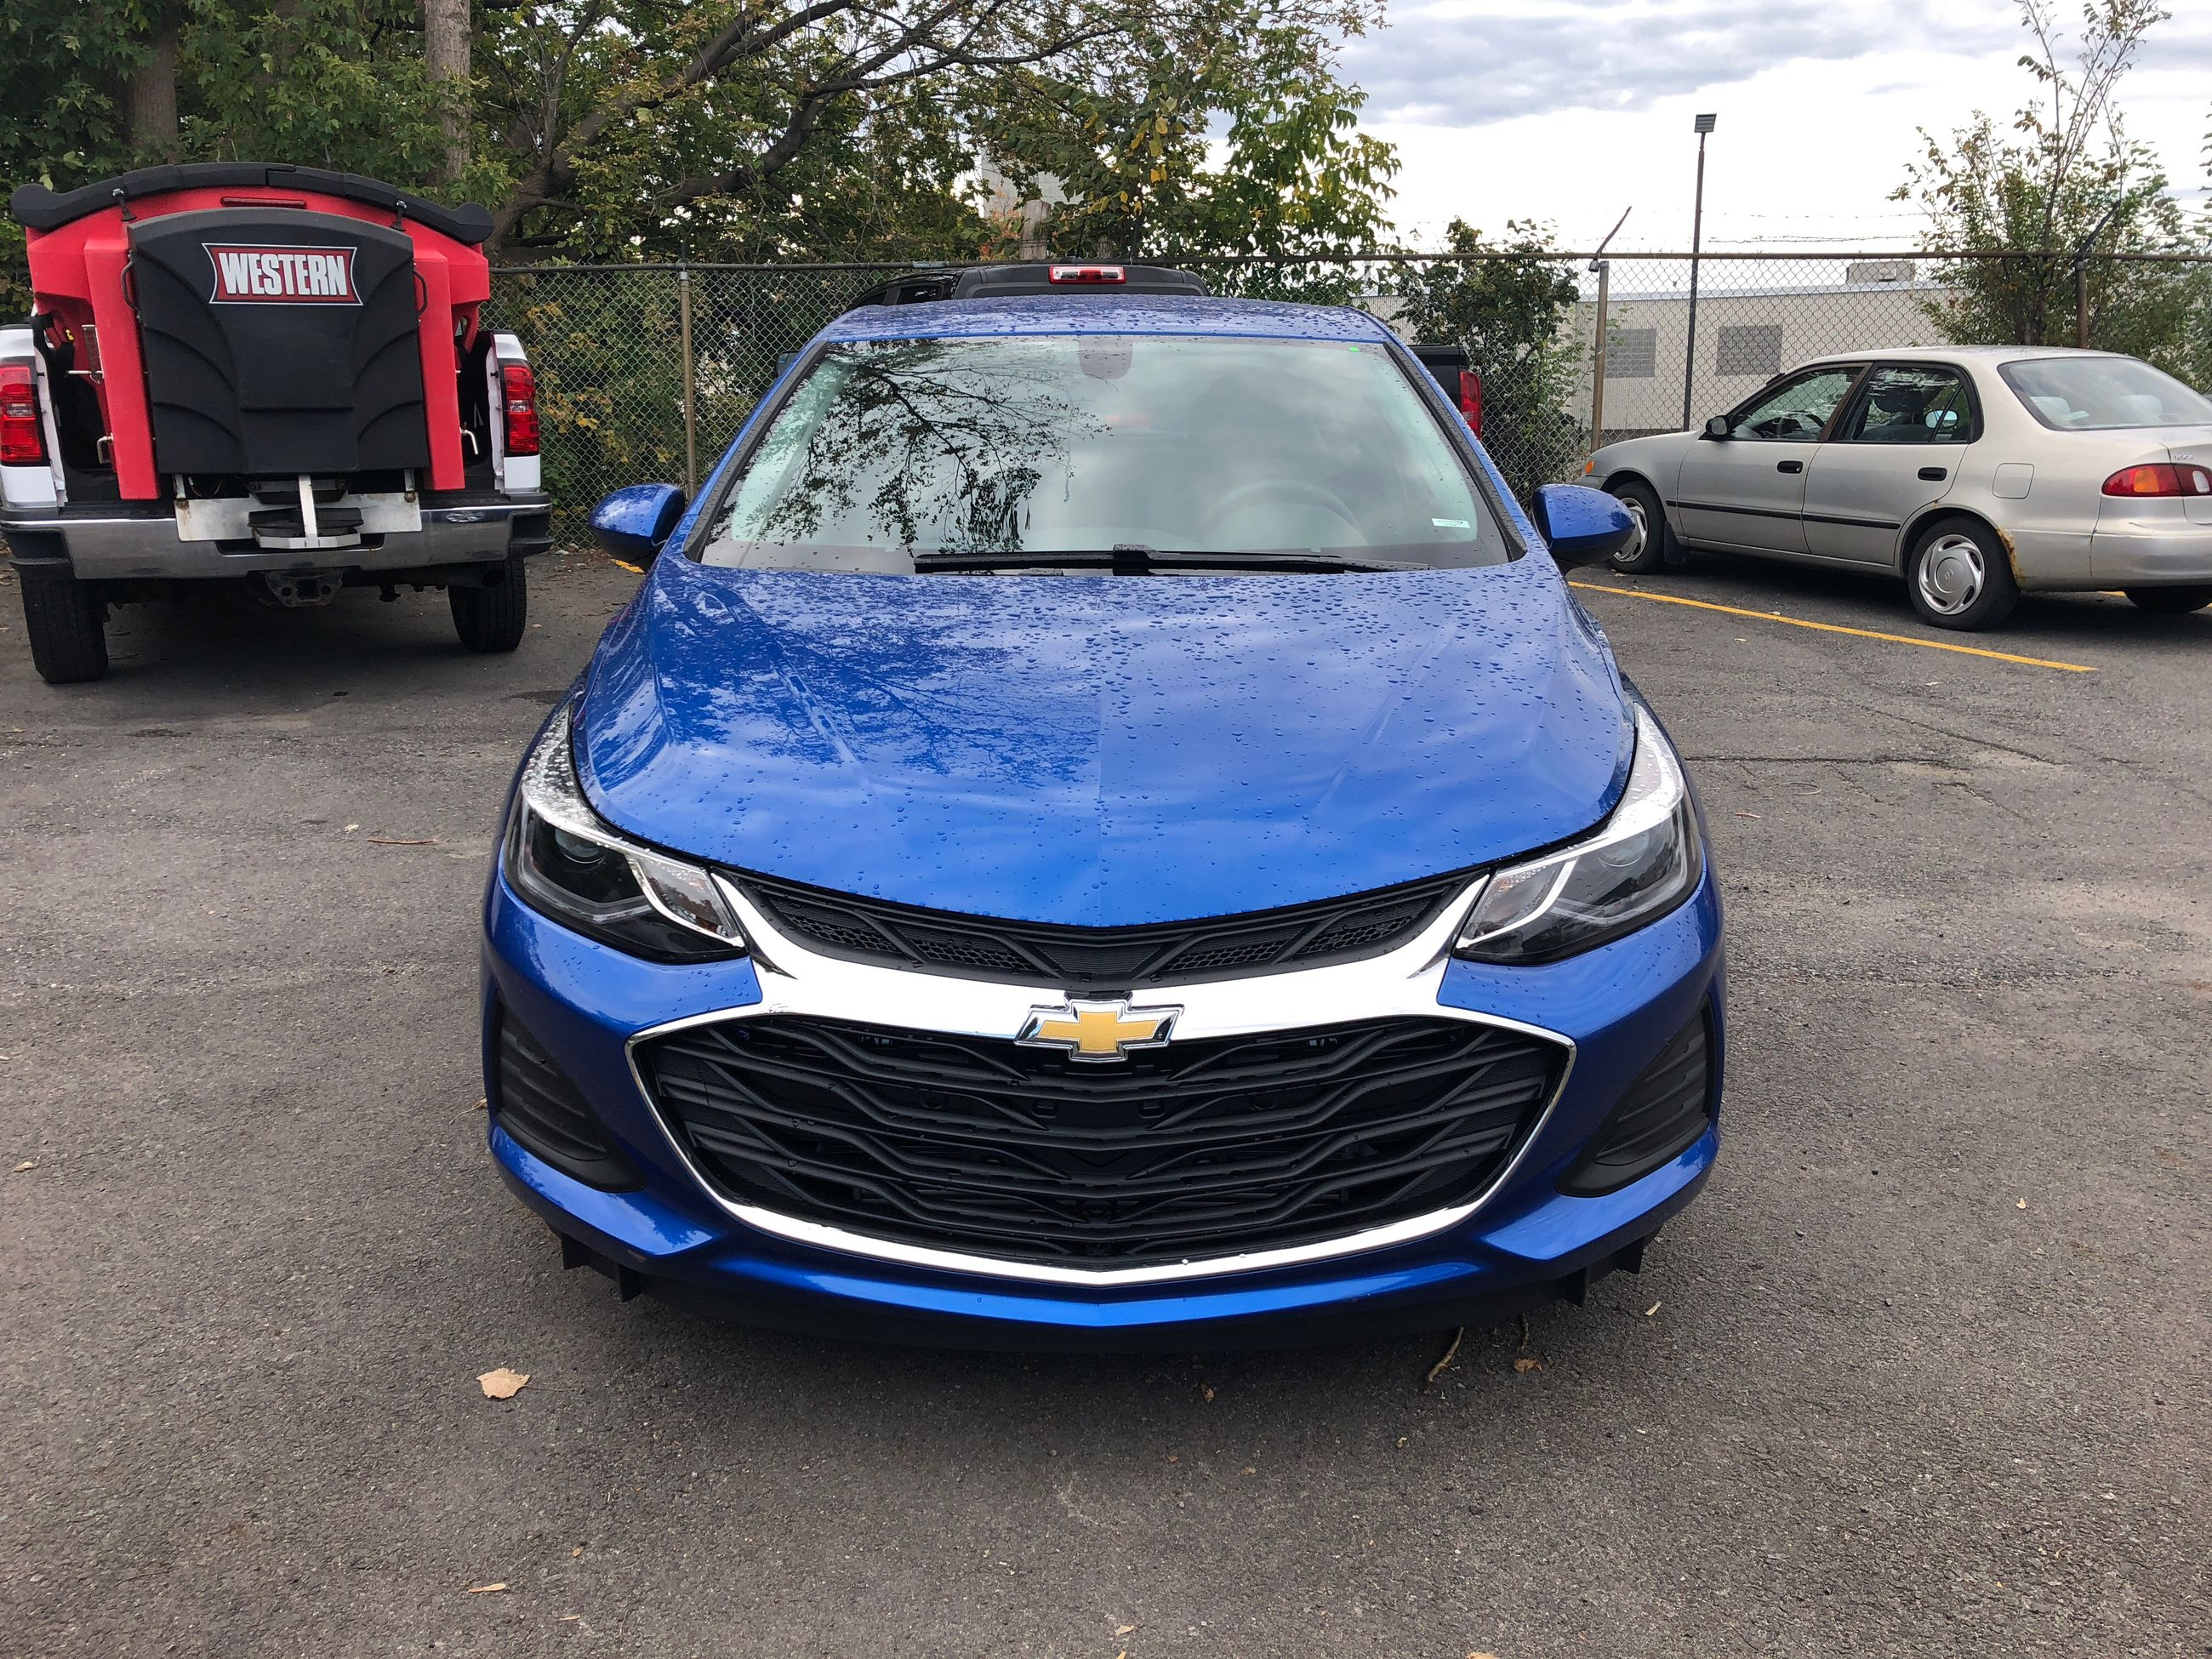 Chevy Cruze Lease >> New 2019 Chevrolet Cruze LT for Sale - $22819.0 | Surgenor Ottawa